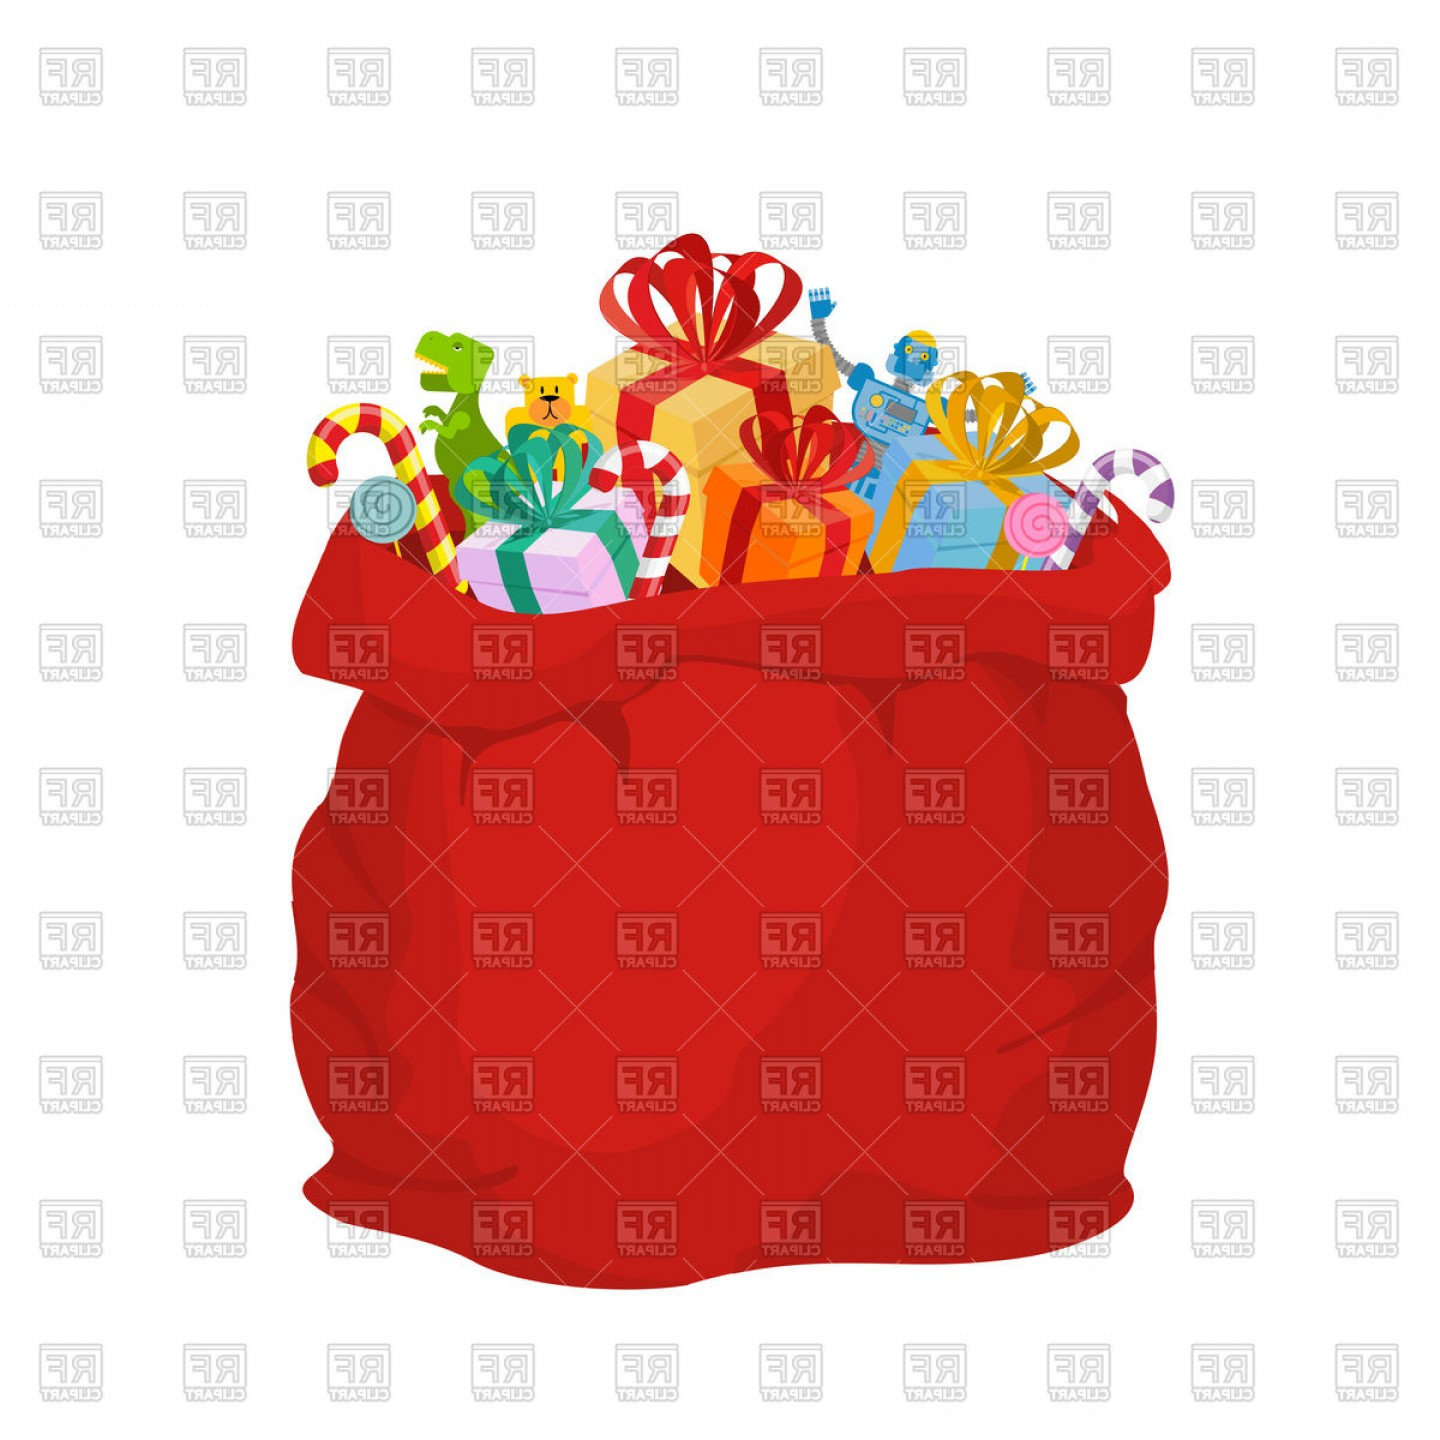 Big Red Christmas Bag With Gifts Vector Clipart.